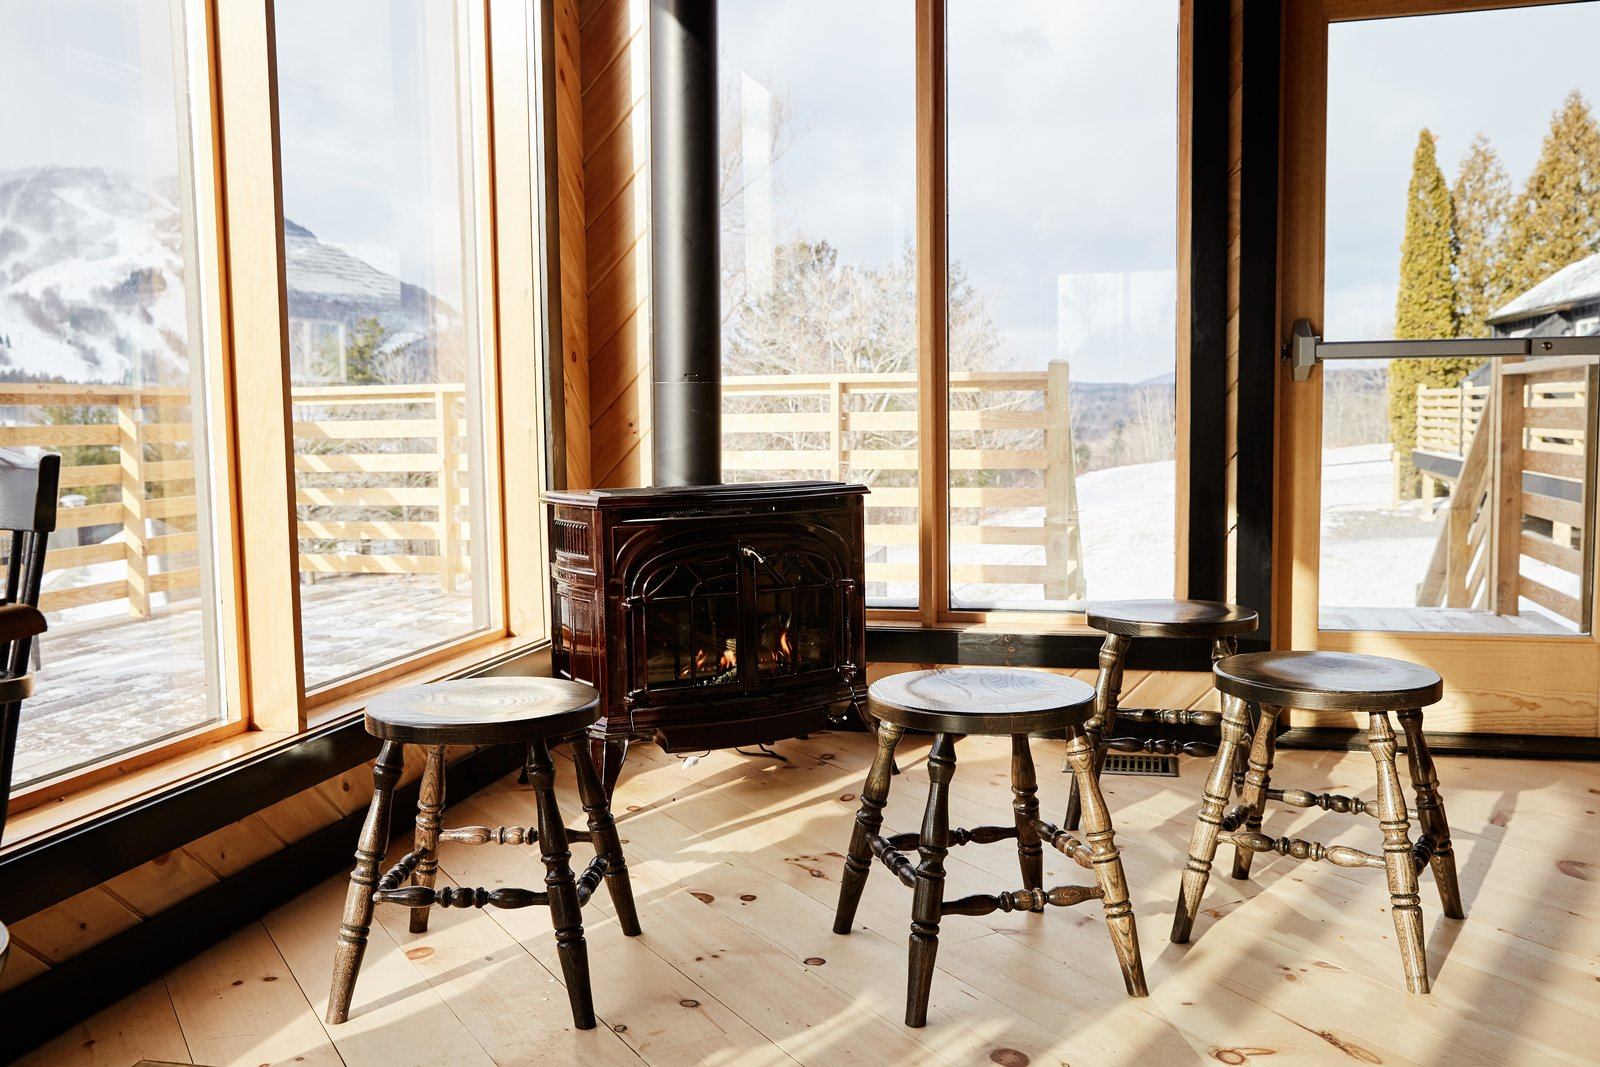 The restaurant looks out to 270-degree views of the Catskill Mountains and takes in ample natural light.  Photo 11 of 14 in A Modern Mountain Lodge That Will Make You Love Winter Like Never Before